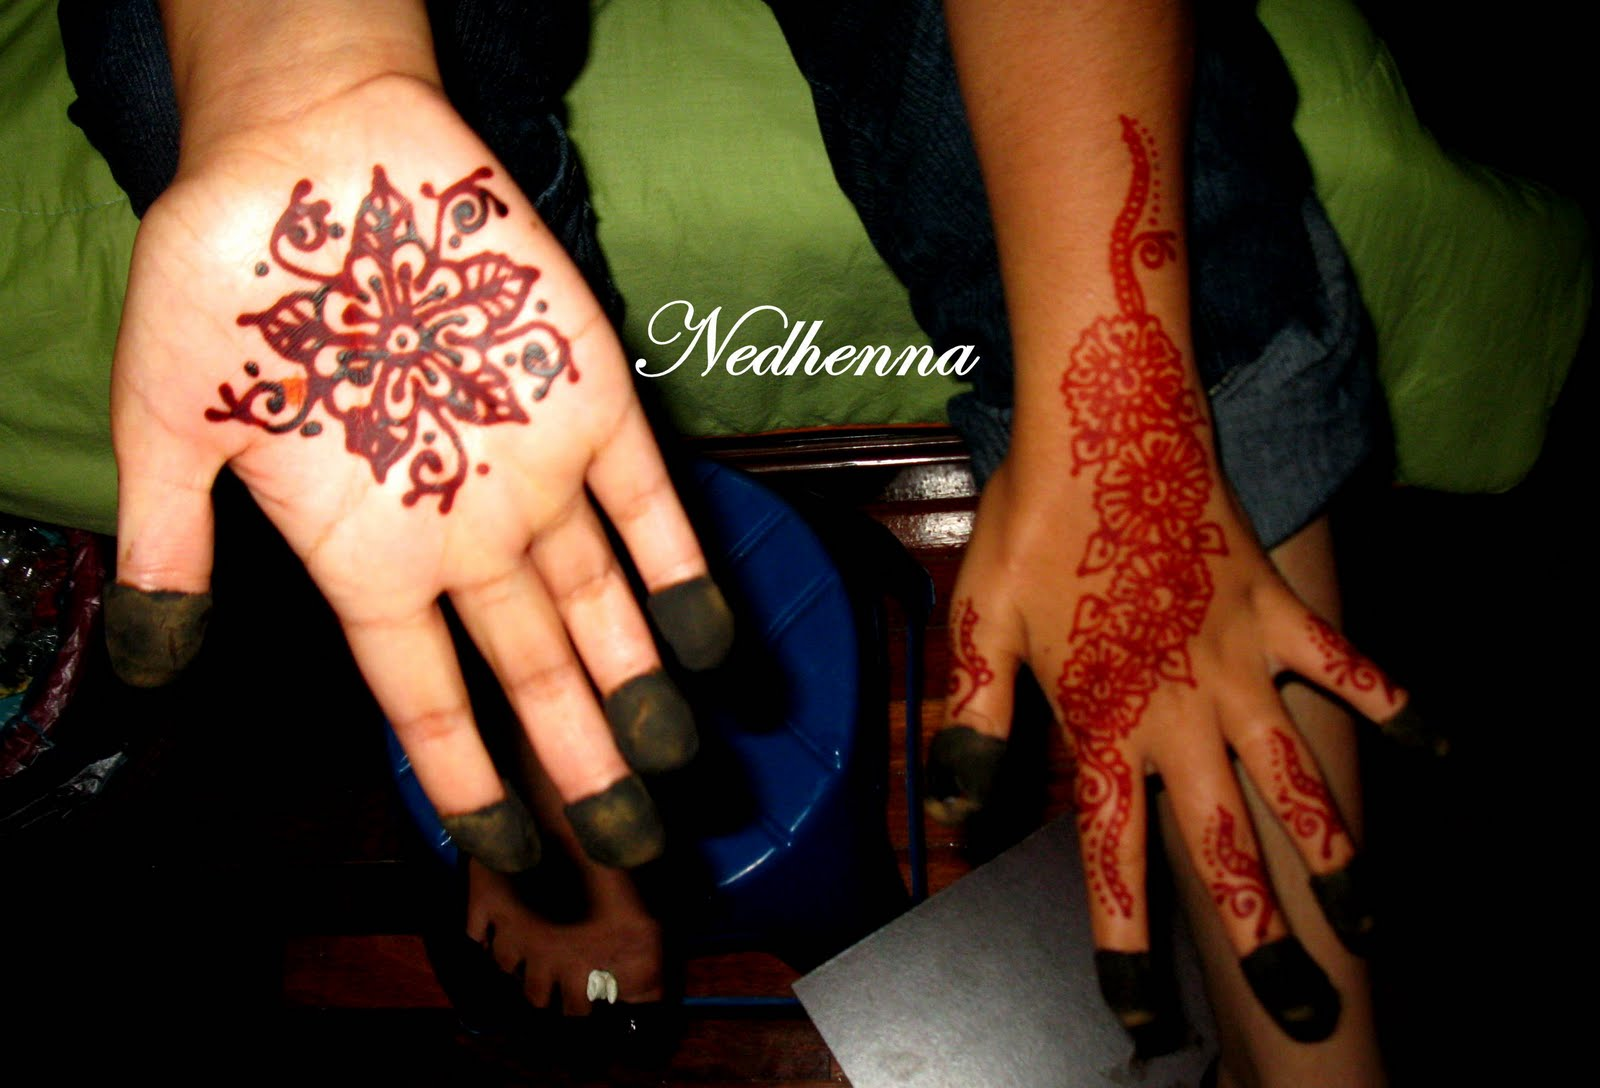 Ned Henna March 2011